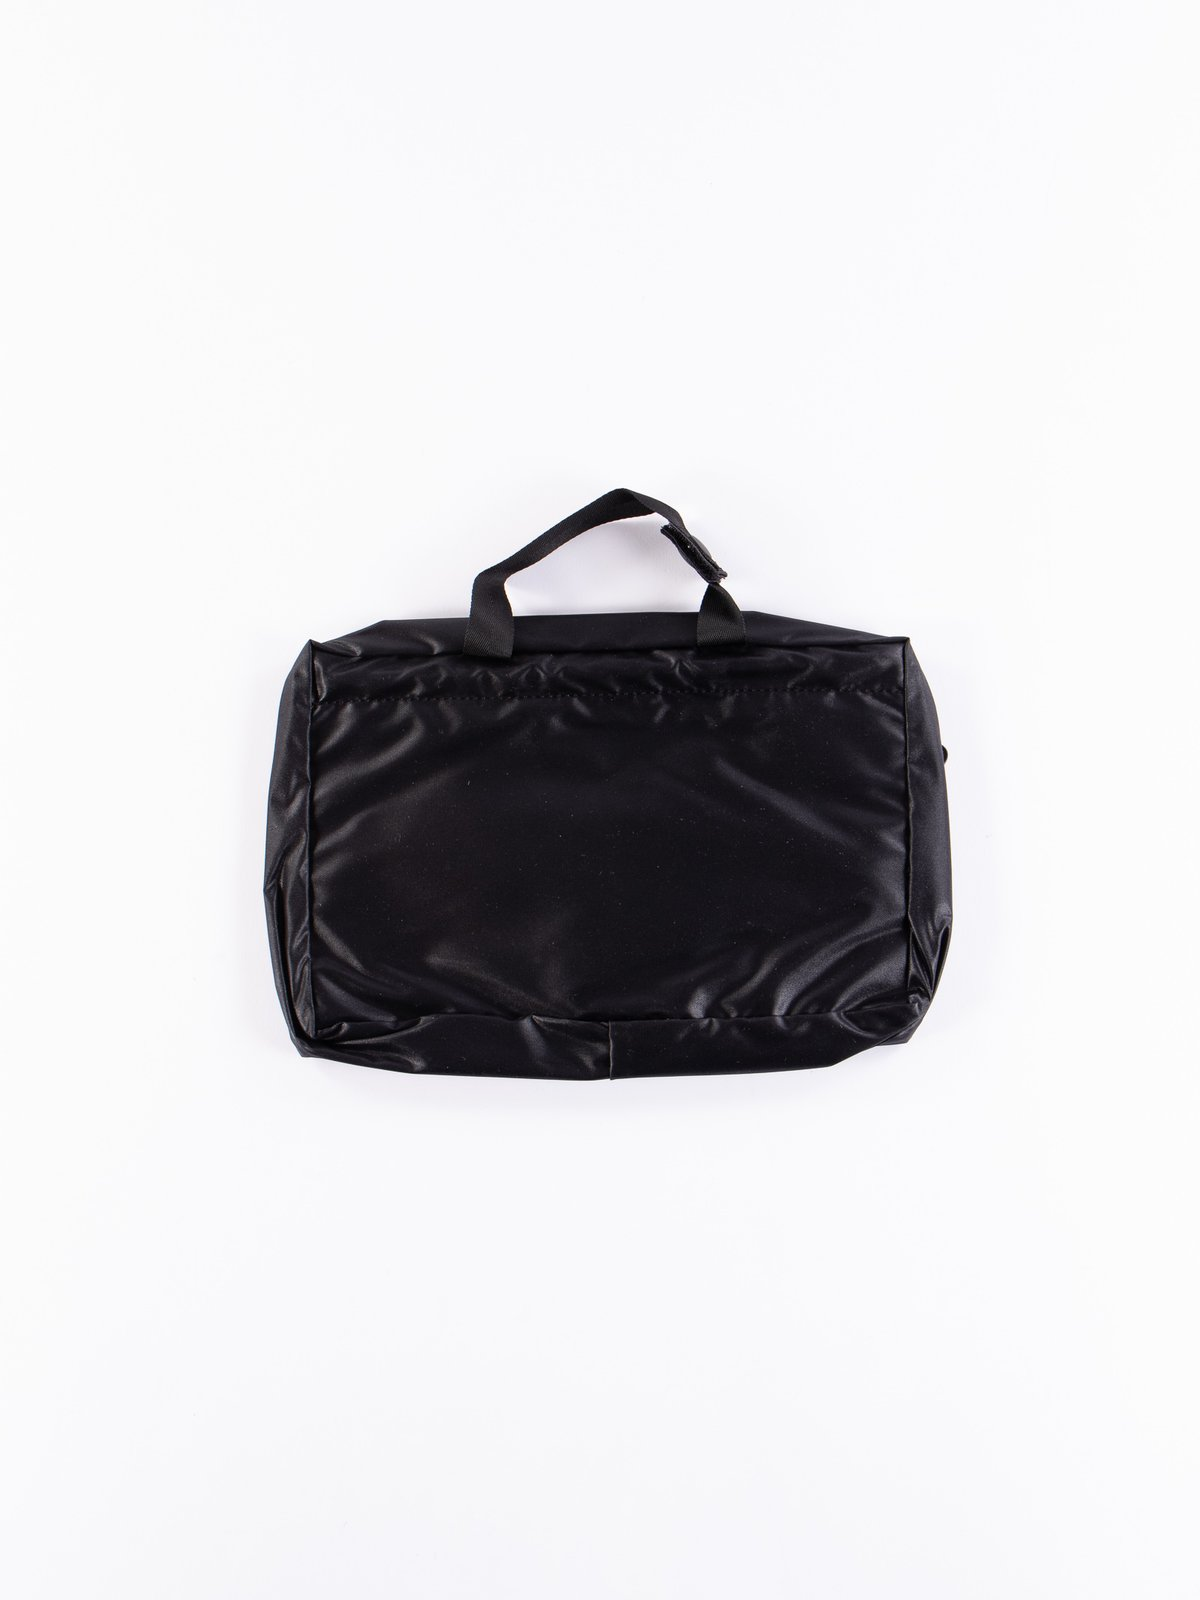 Black Snack Pack 09812 Pouch Large - Image 3